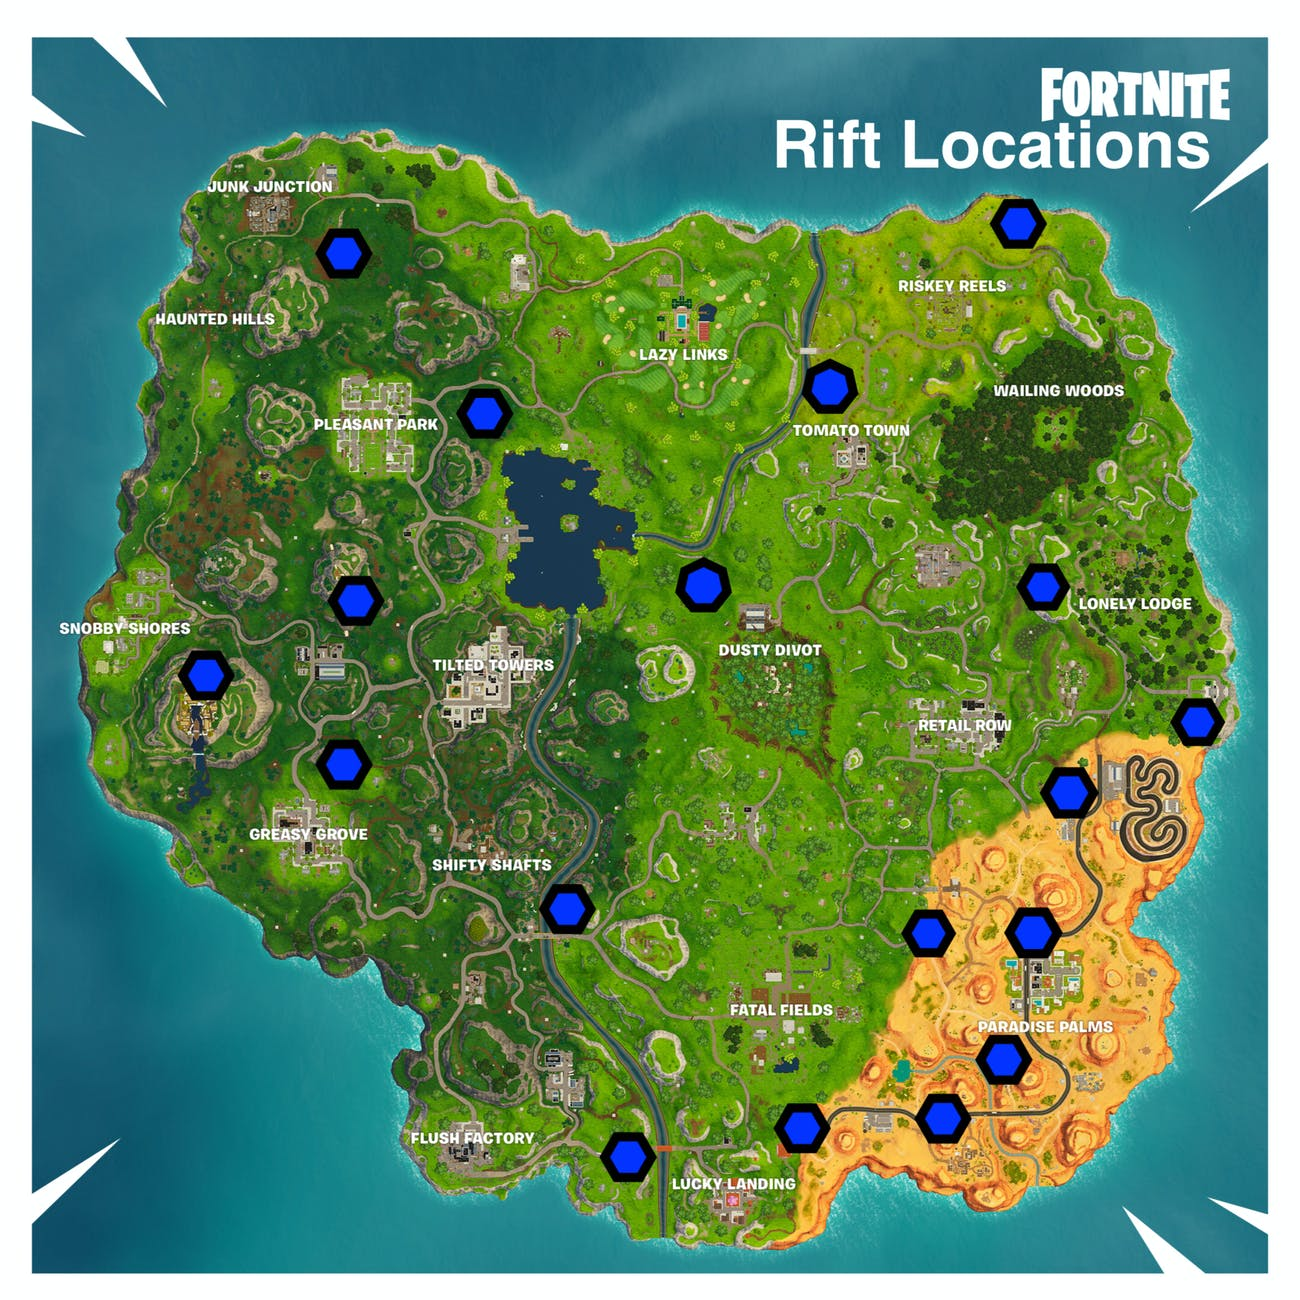 'Fortnite' Rift Portal Locations